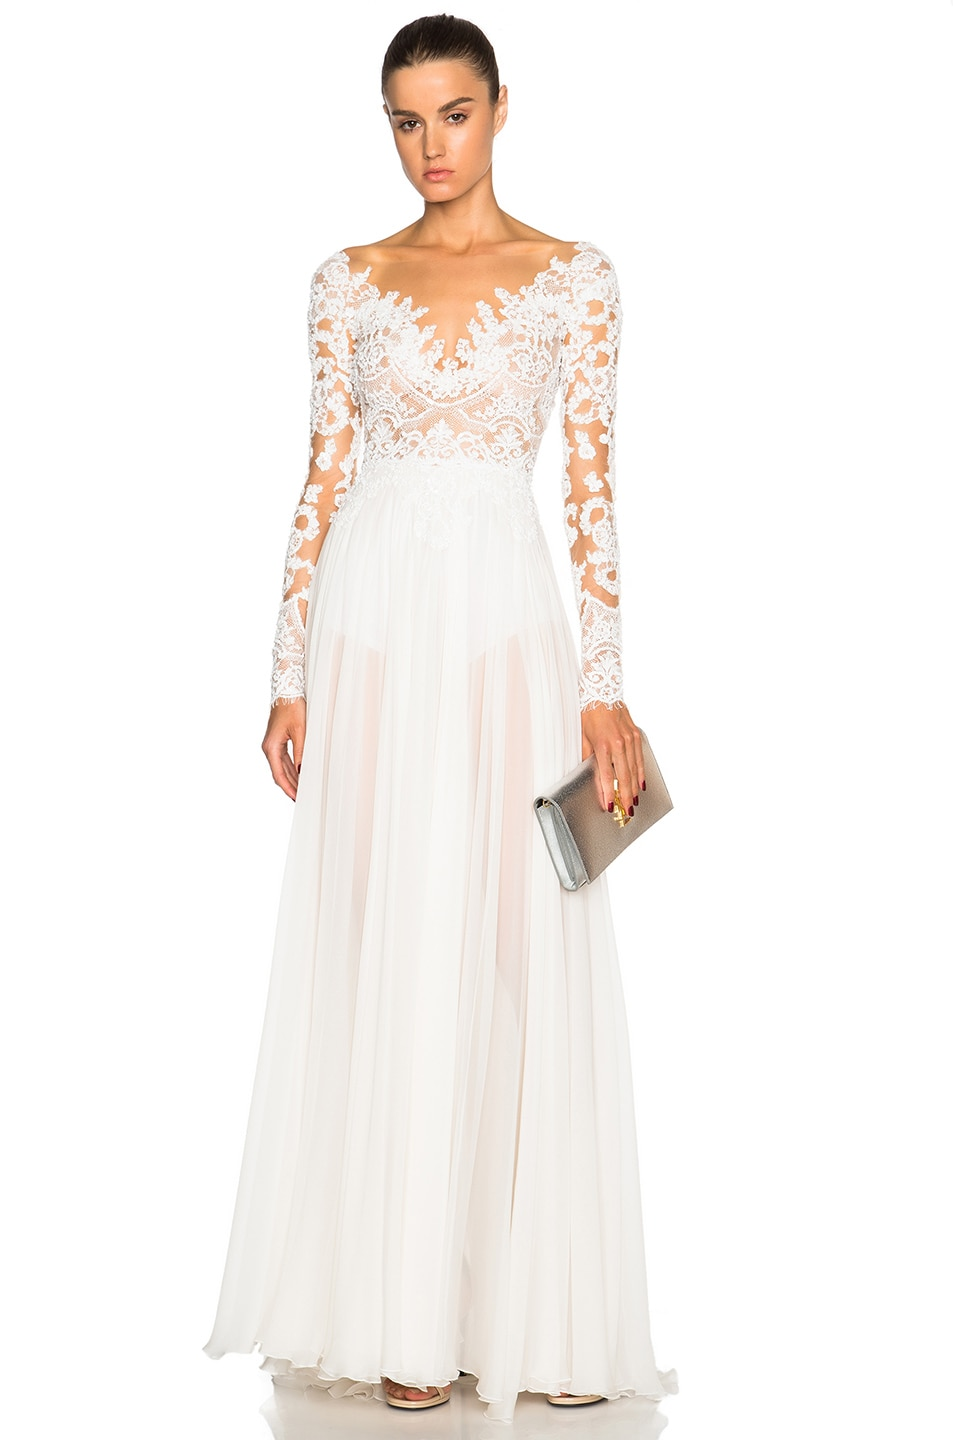 Zuhair Murad Embroidered Long Sleeve Gown in Egret | FWRD